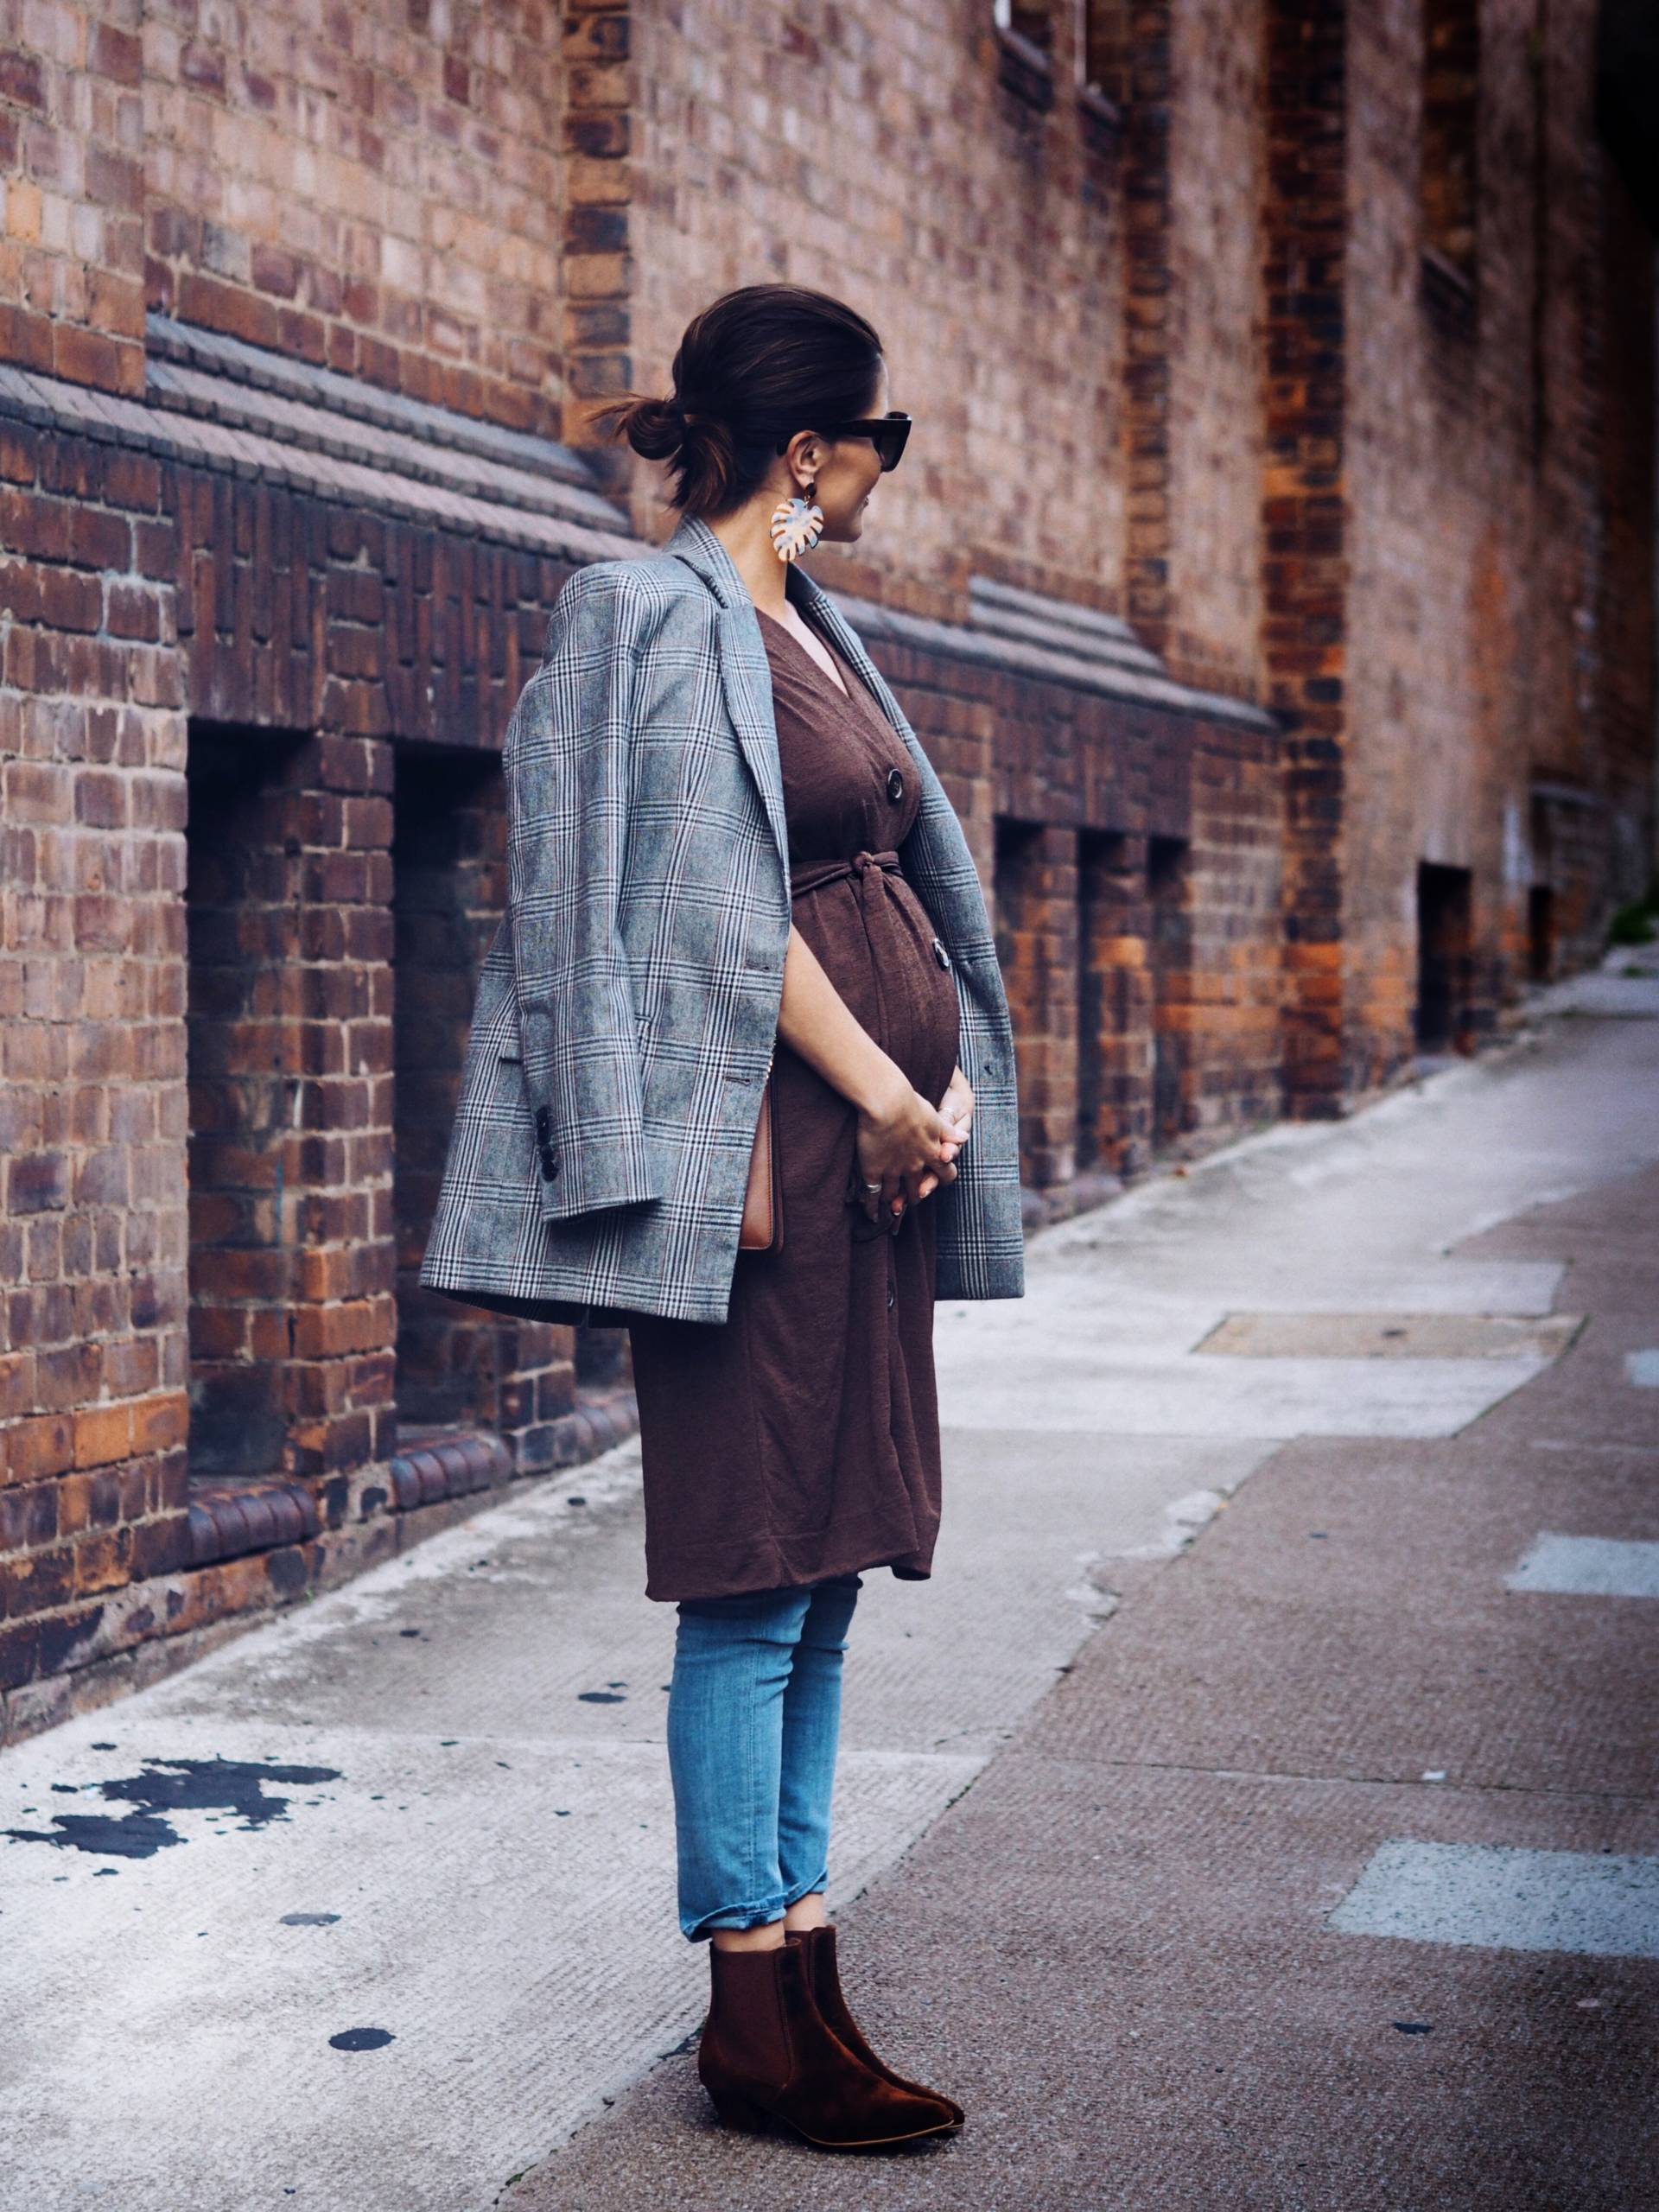 LAFOTKA-DUO-BOOTS-TAN-STYLING-PREGNANCY-AUTUMN